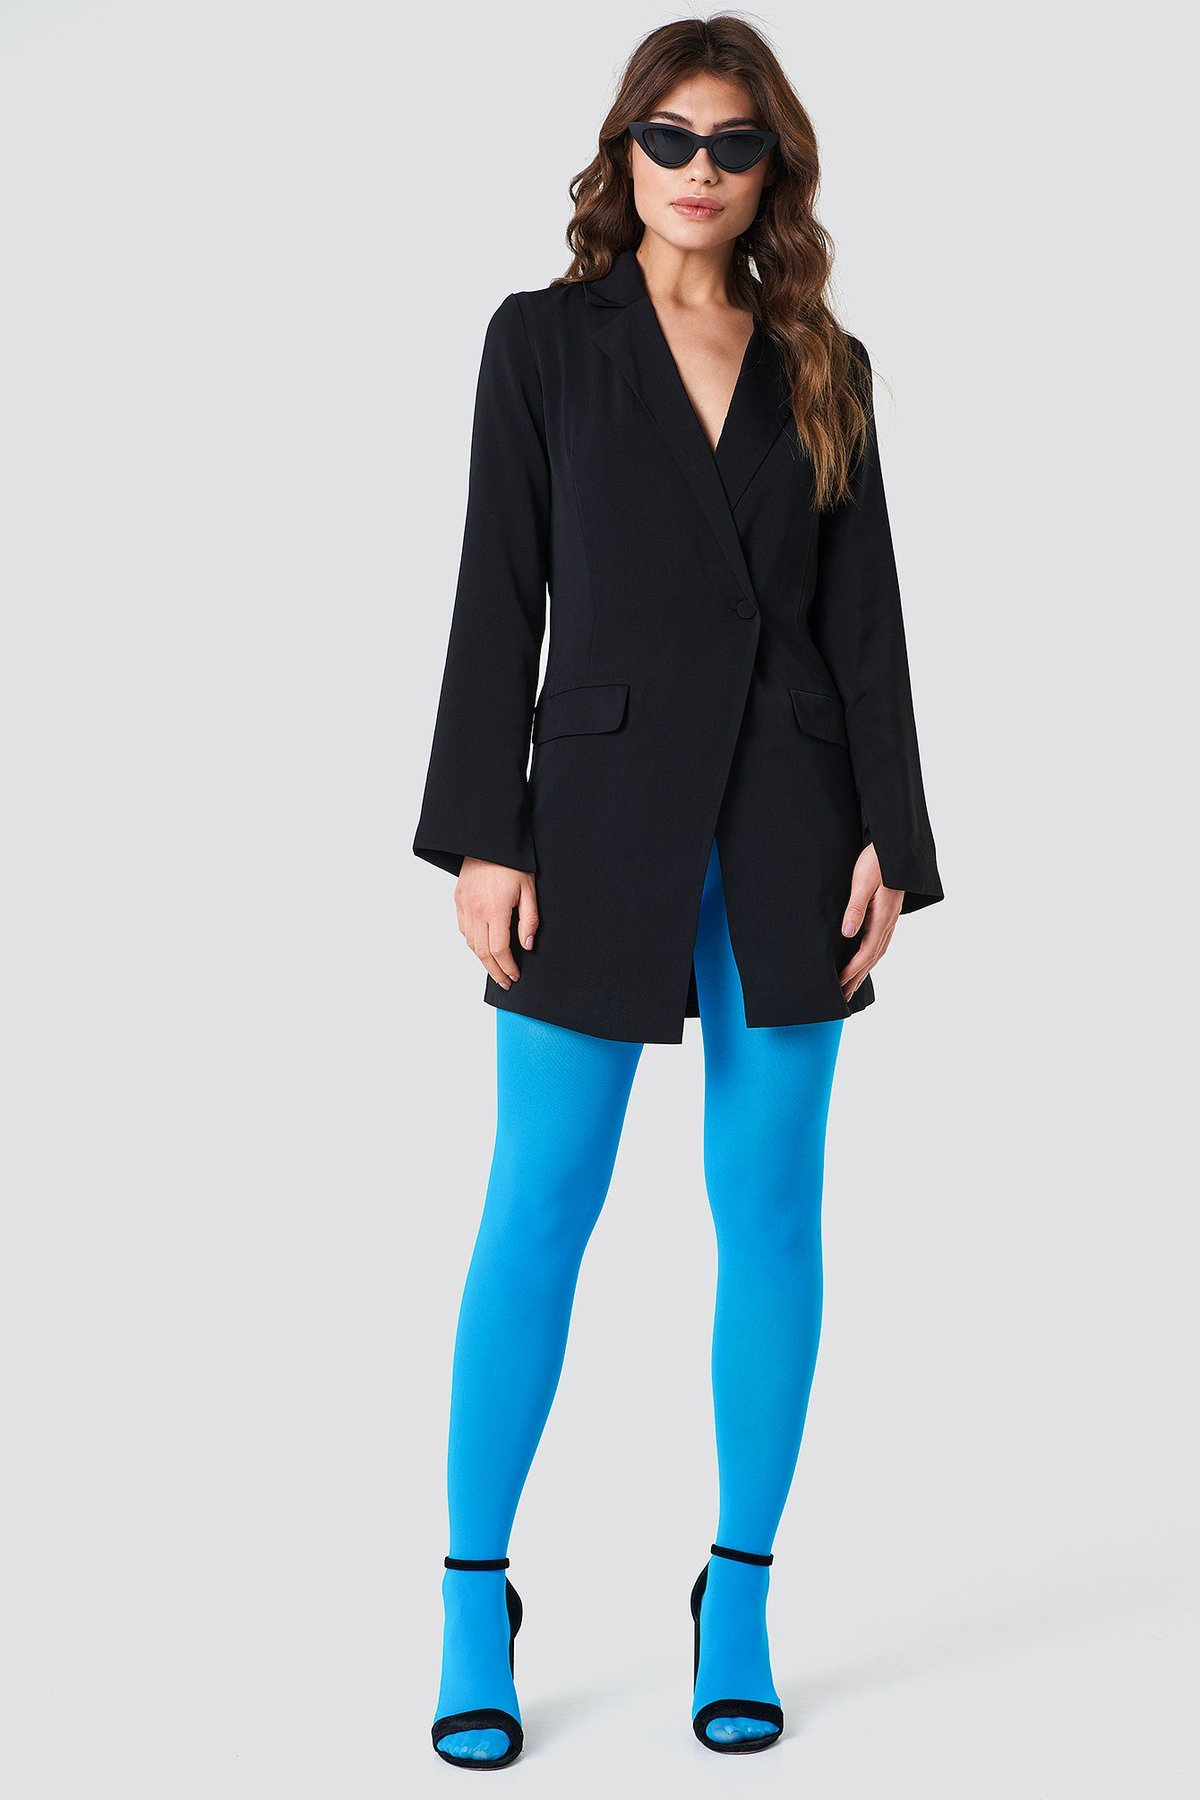 Model wears neon blue tights with a black blazer dress